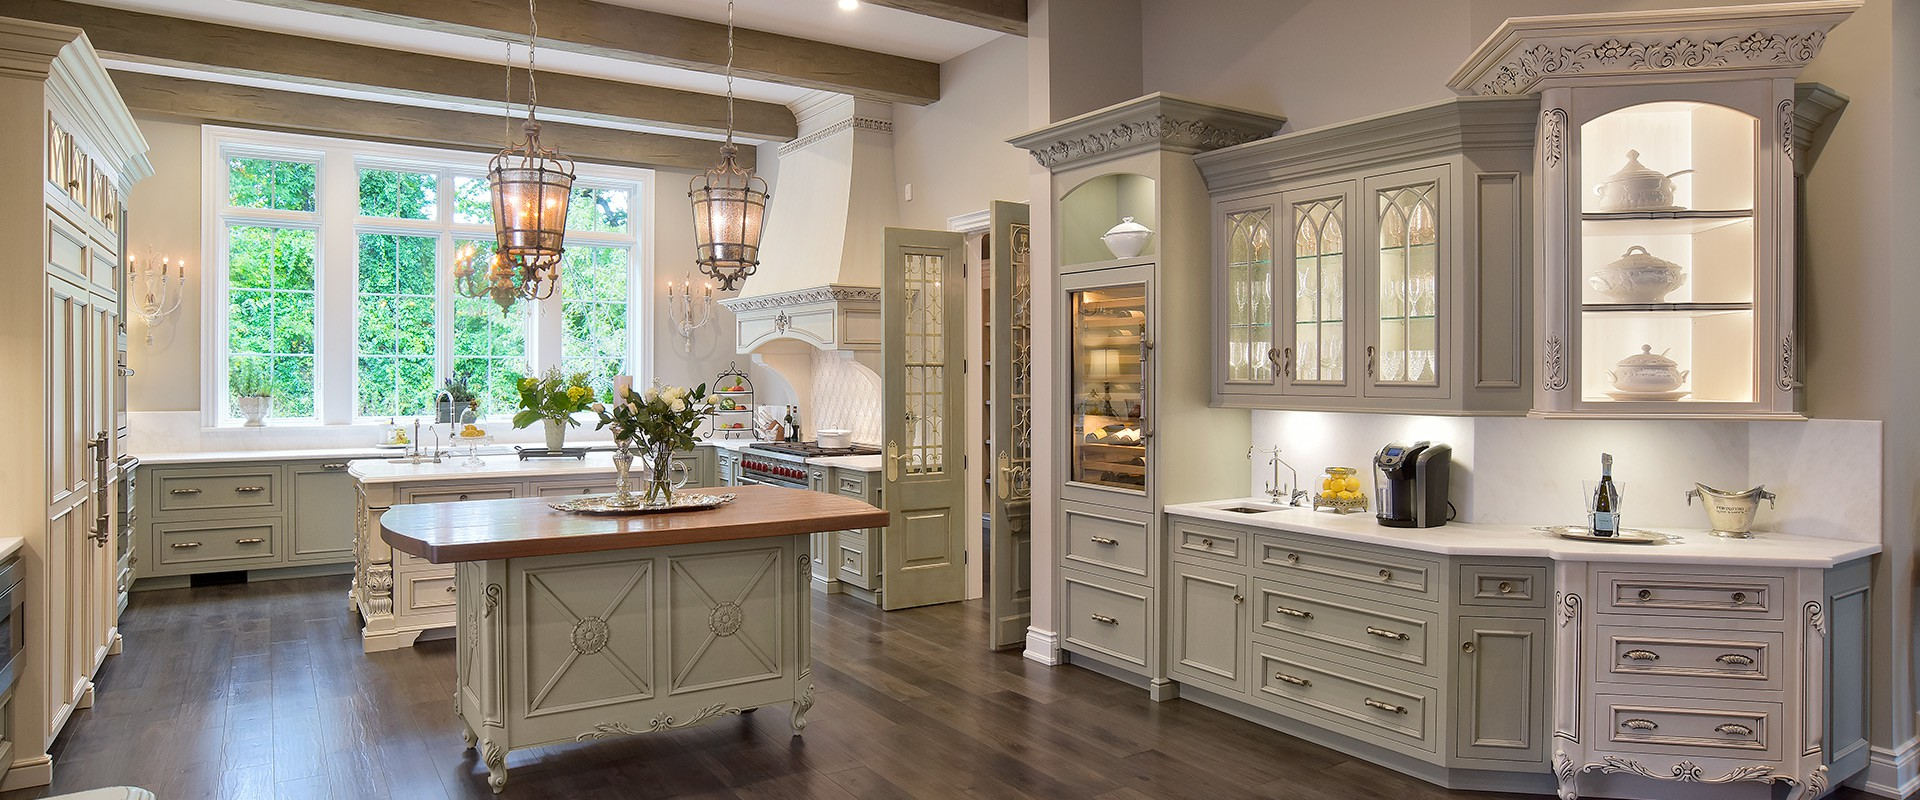 Custom Cabinets U0026 Cabinetry | Quality Cabinets | Cabinet Specialties Inc